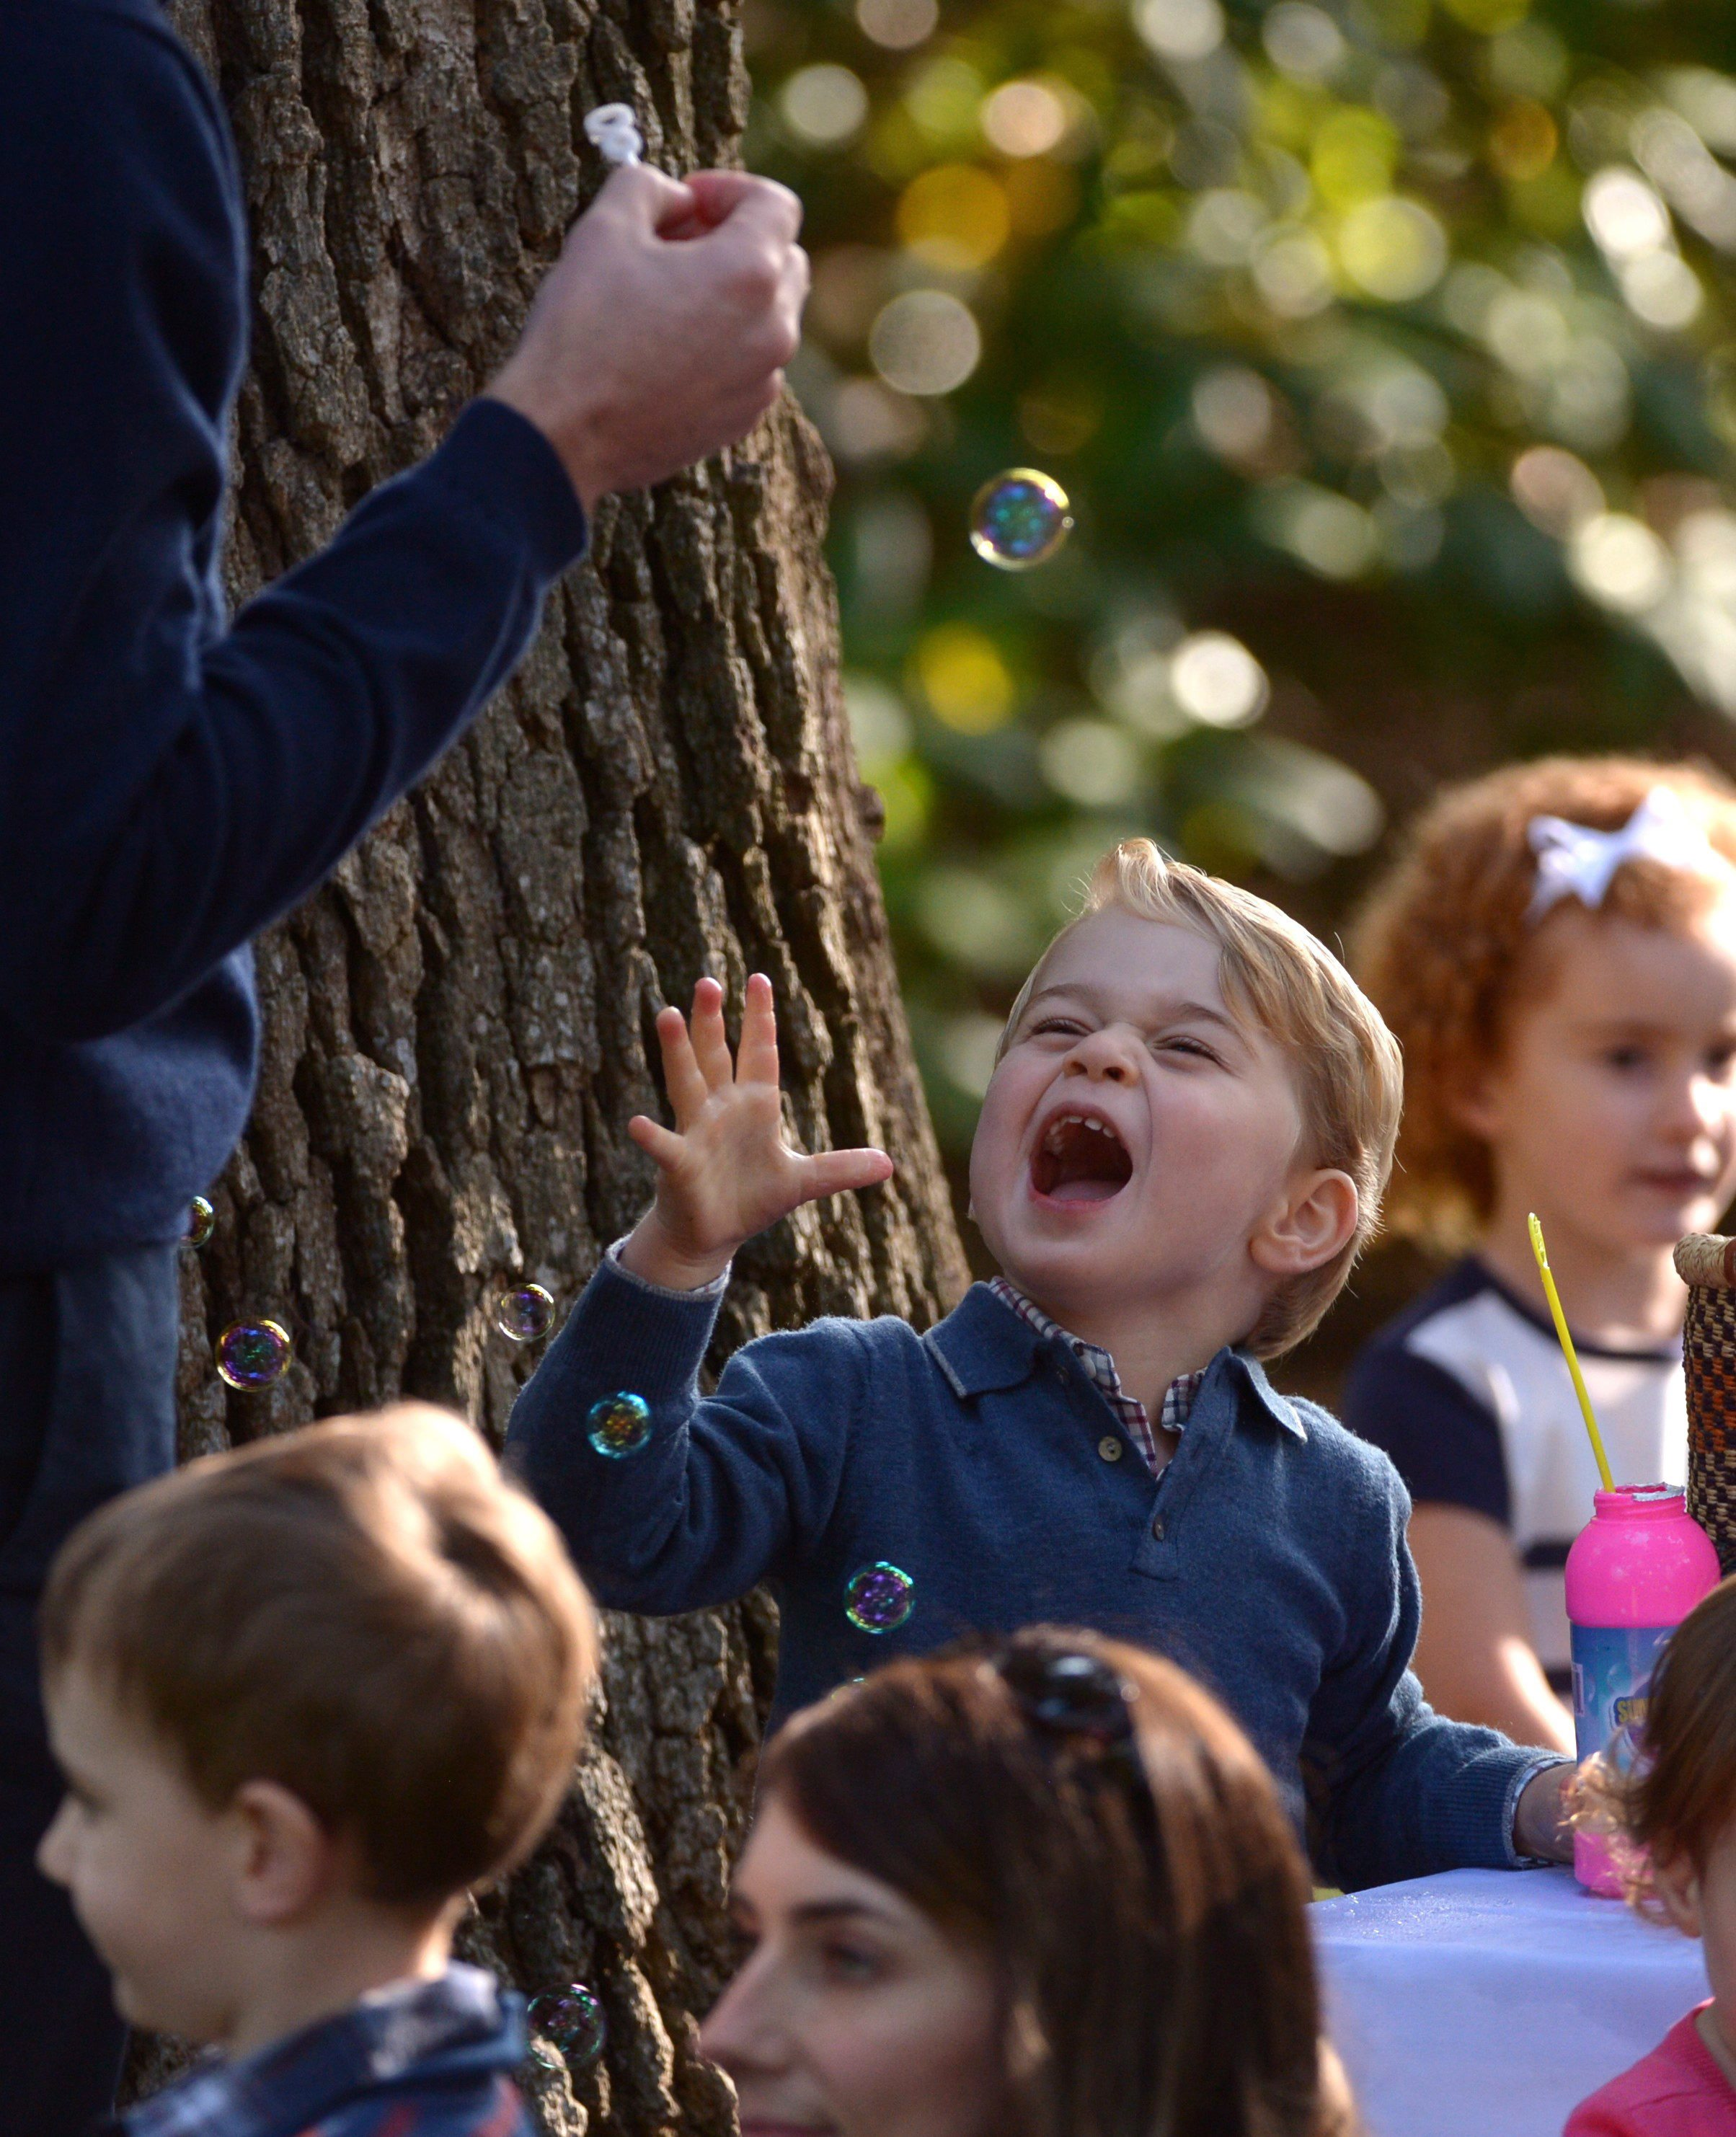 Prince George plays with bubbles during a children's tea party at Government House in Victoria, Thursday, Sept. 29, 2016. THE CANADIAN PRESS/Jonathan Hayward